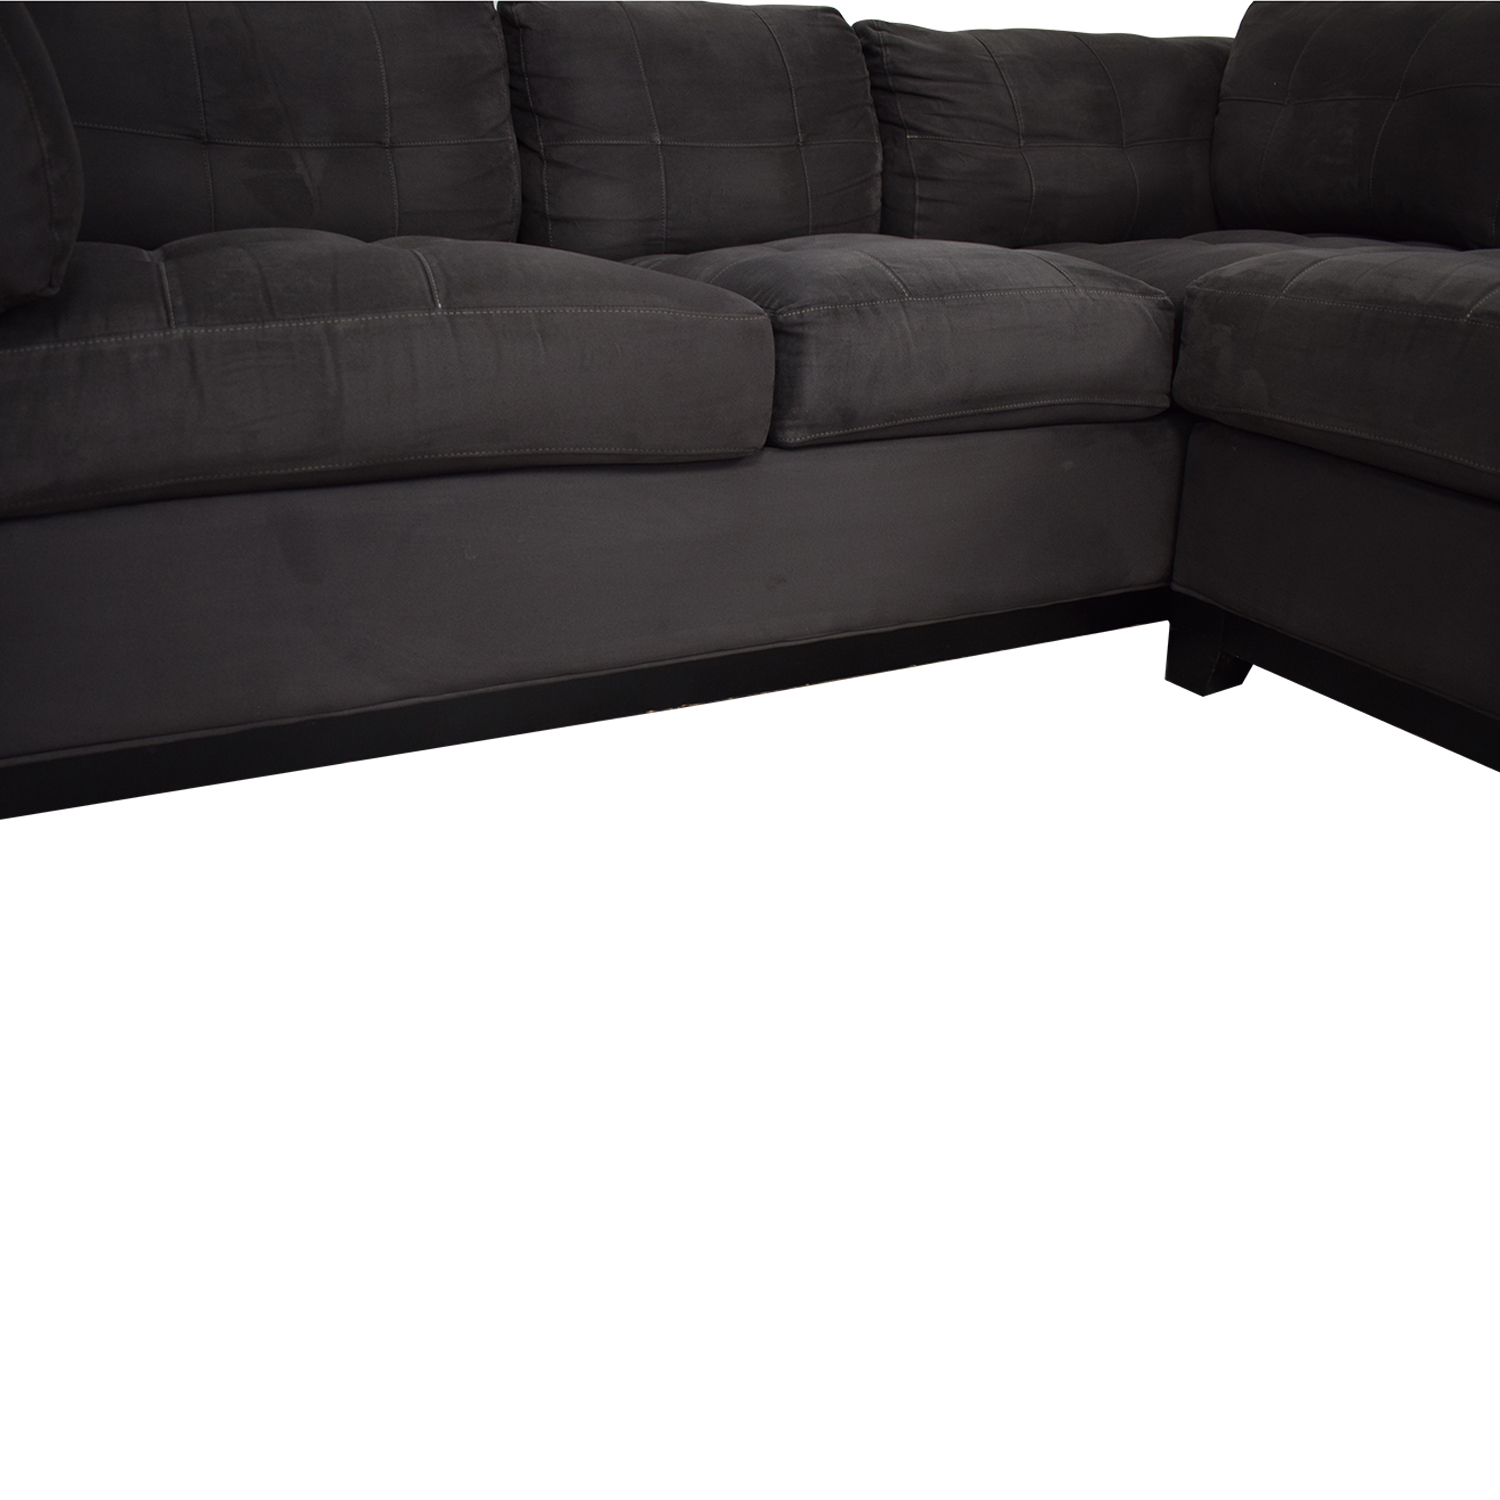 Cindy Crawford Home Cindy Crawford Home Two-Piece Sectional Sofas